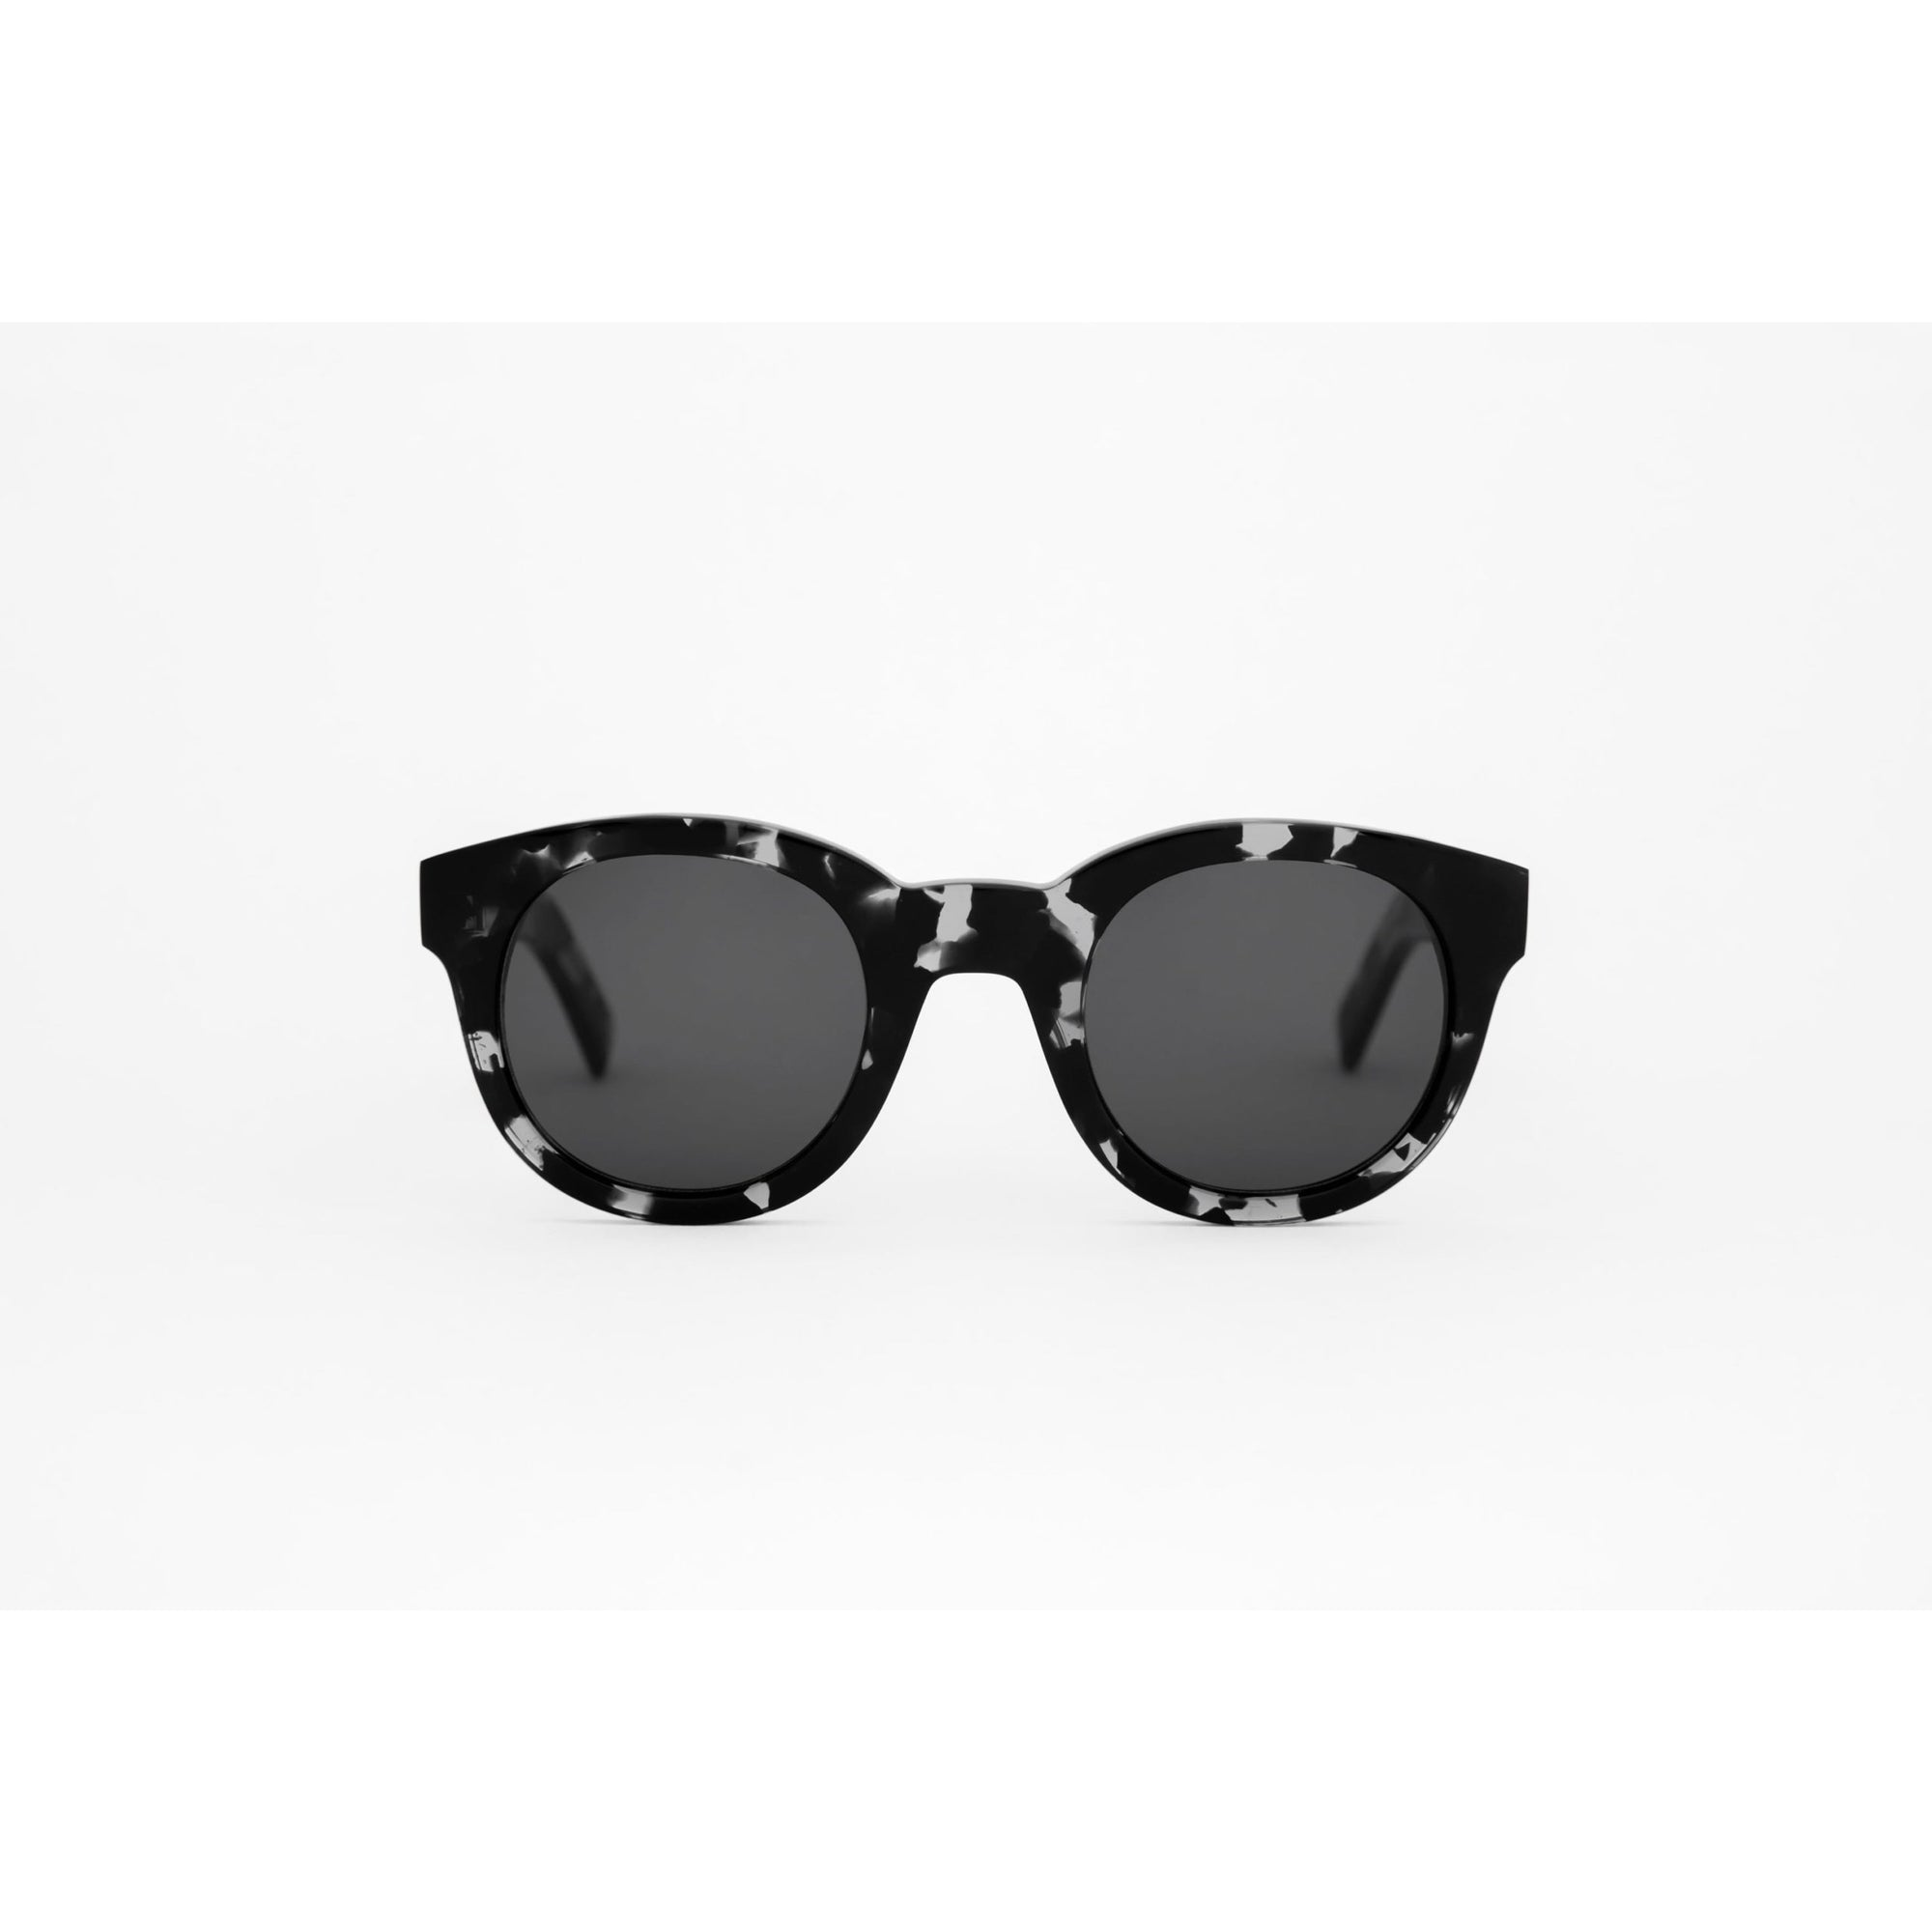 Sonnenbrille Shiro Black Grey Havana